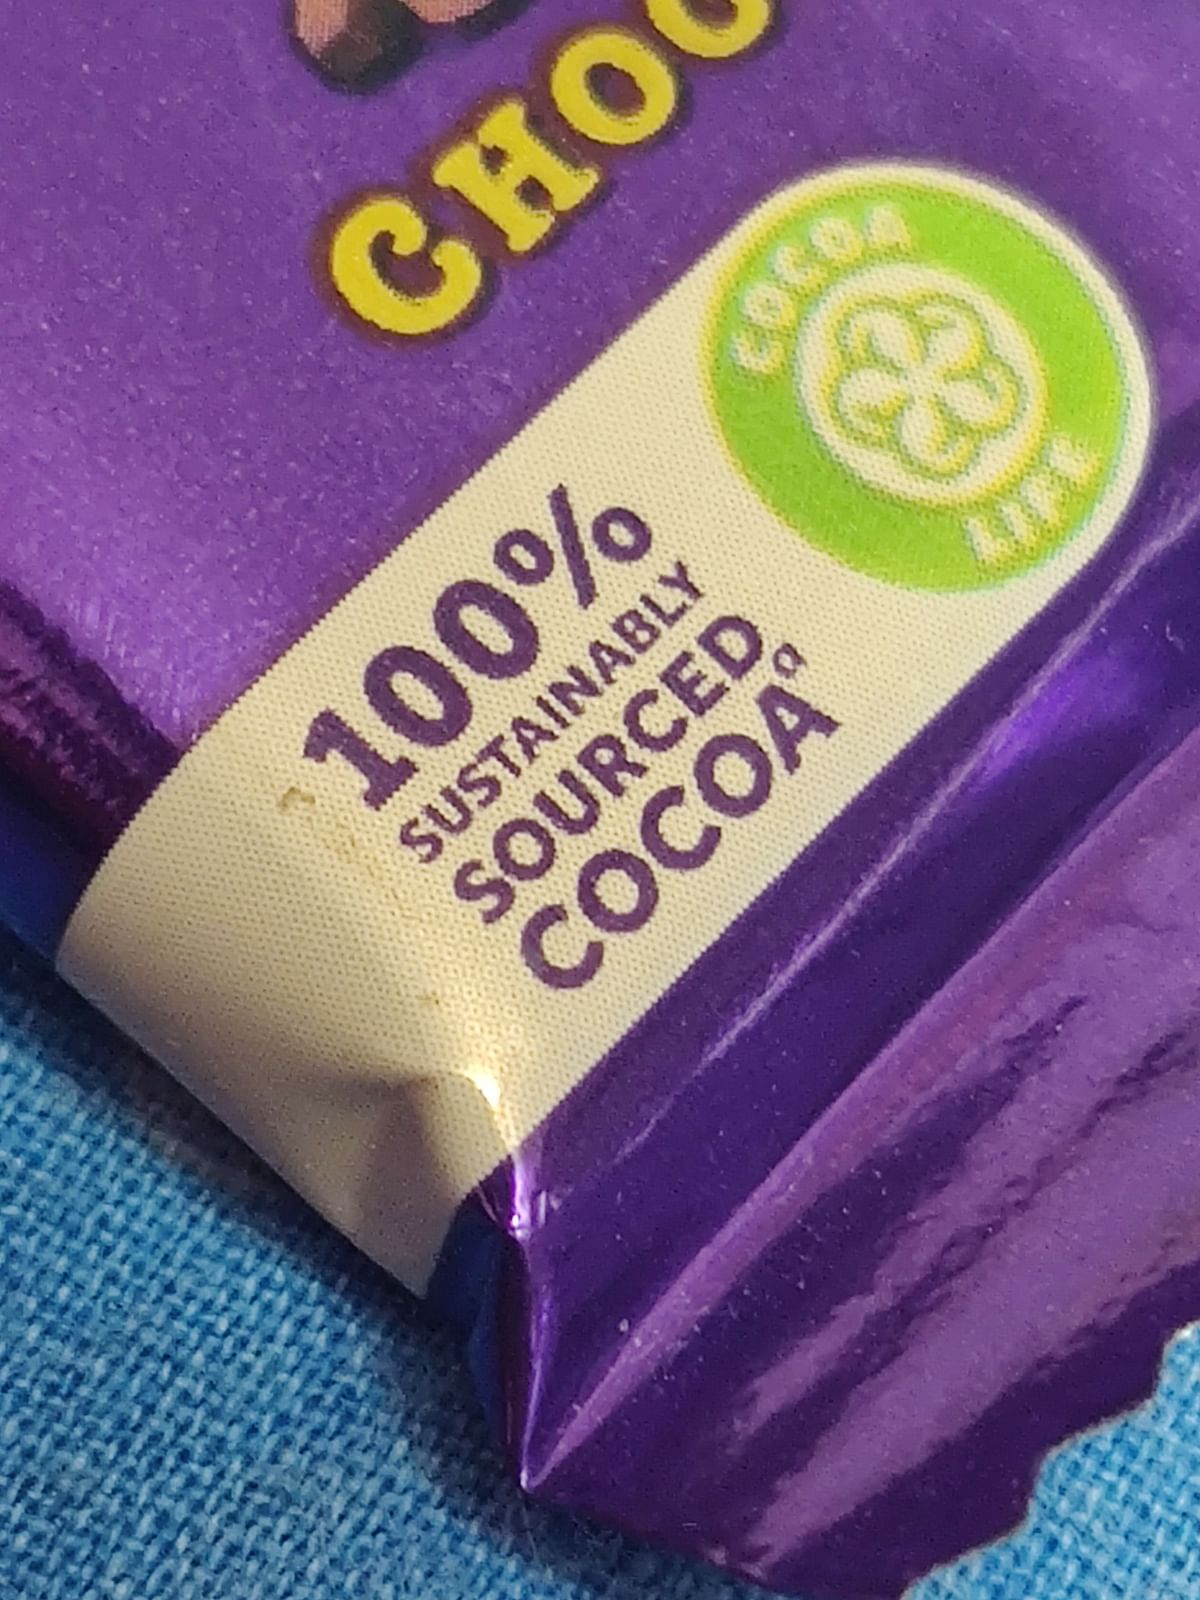 Cadbury Dairy Milk wrapper bears '100% sustainably sourced cocoa' tag